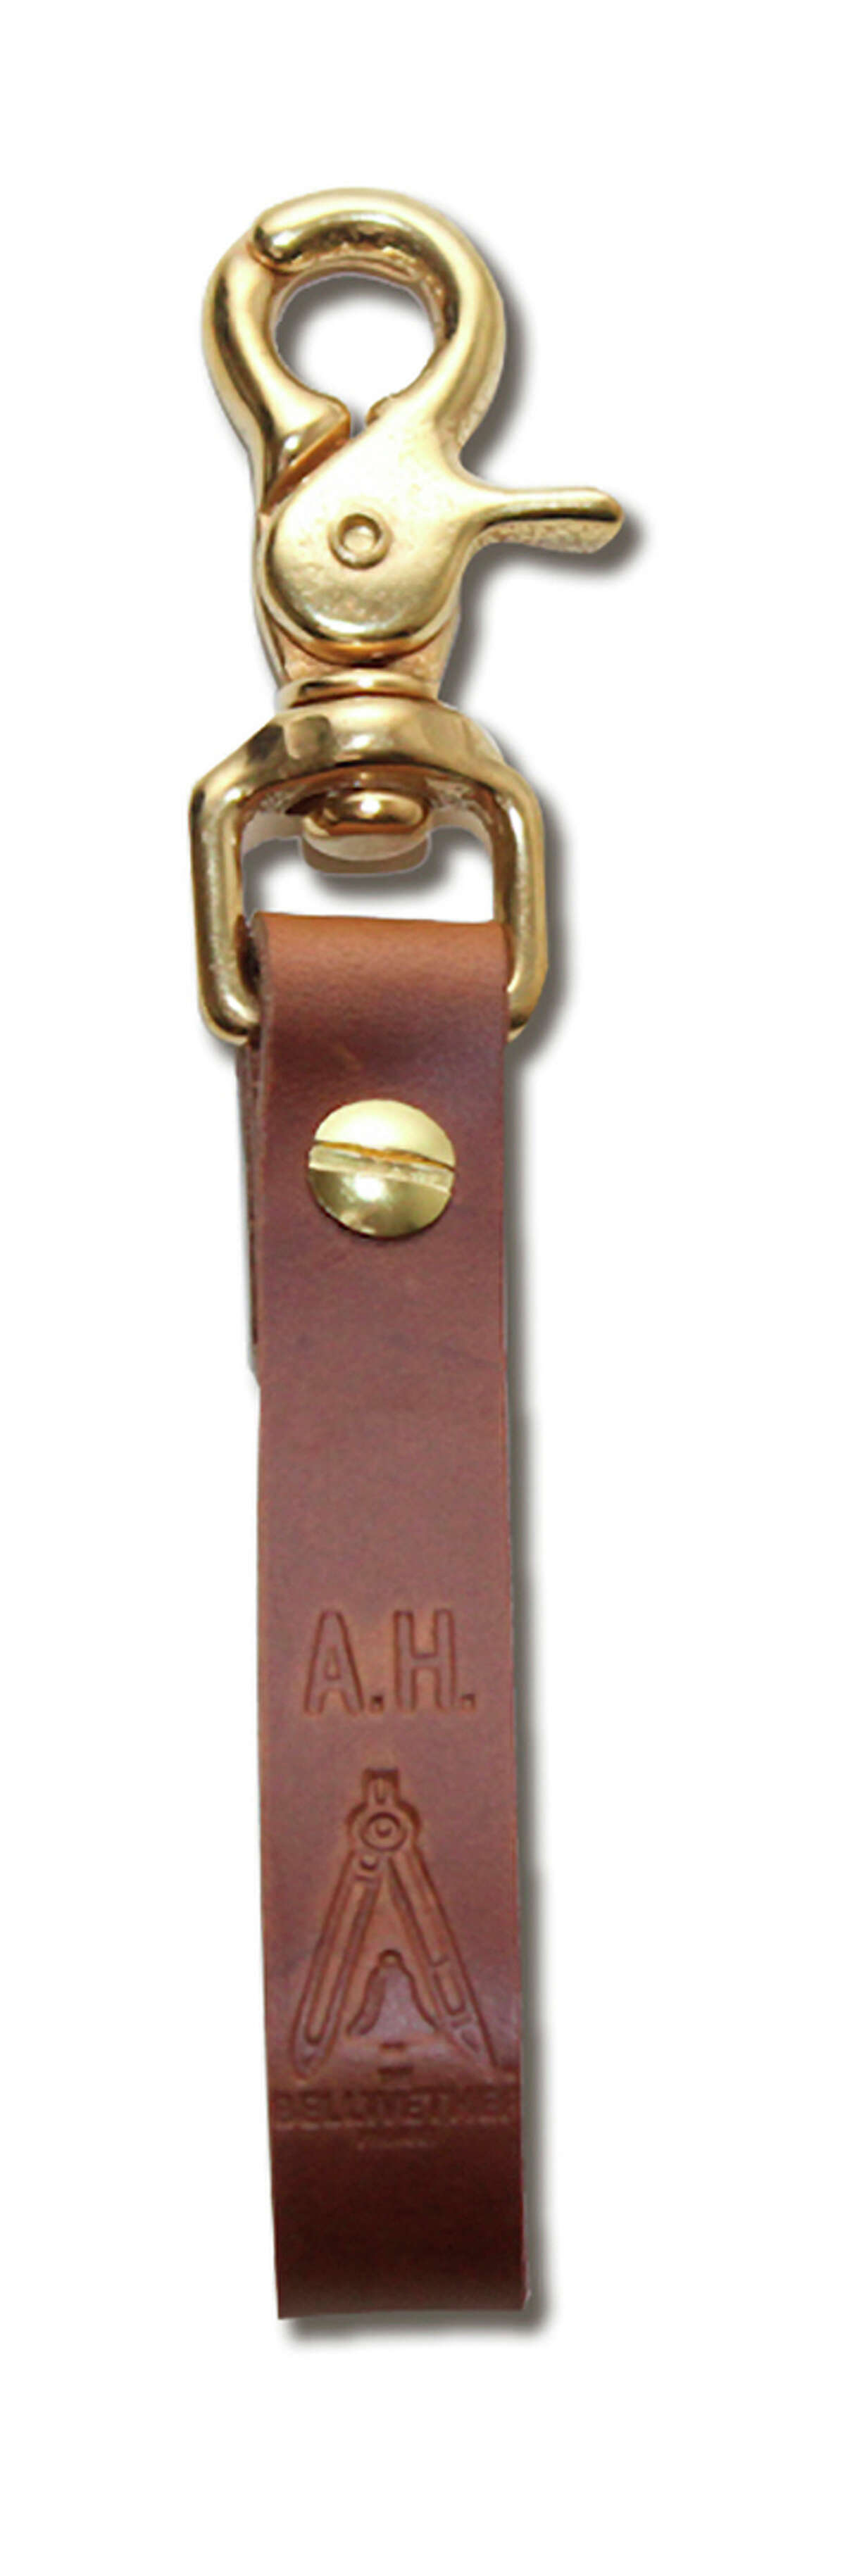 Key fob, $30, and other goods made in collaboration with Aegis Handcraft.